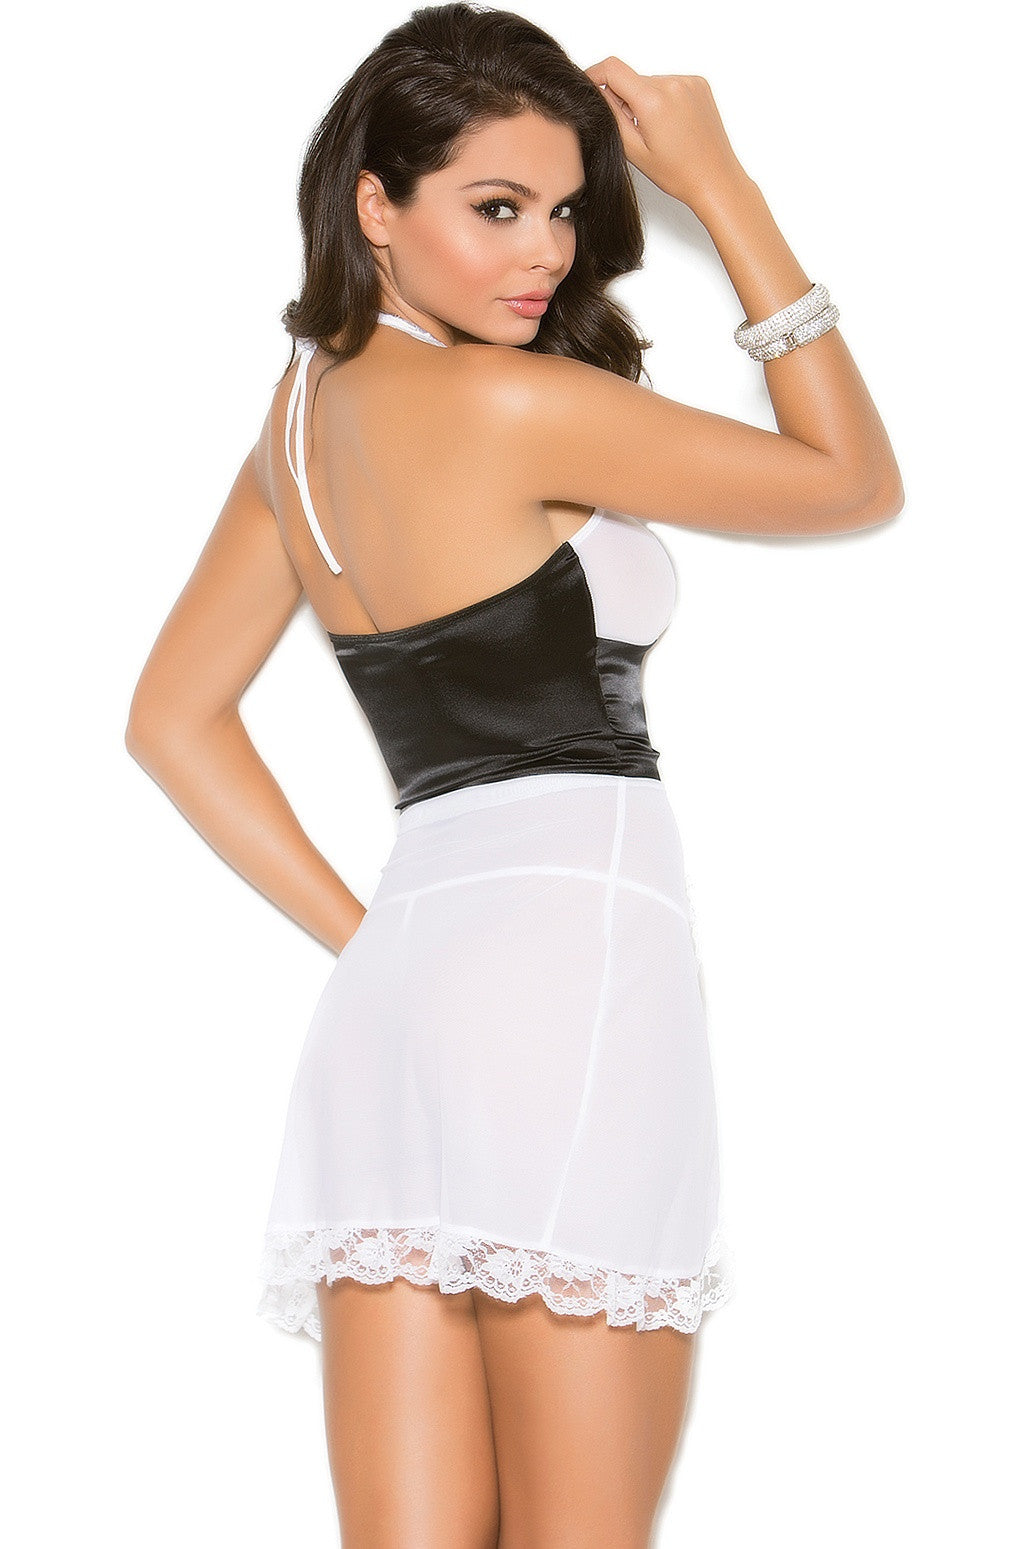 EM-4255 Black and White Babydoll - Sexylingerieland